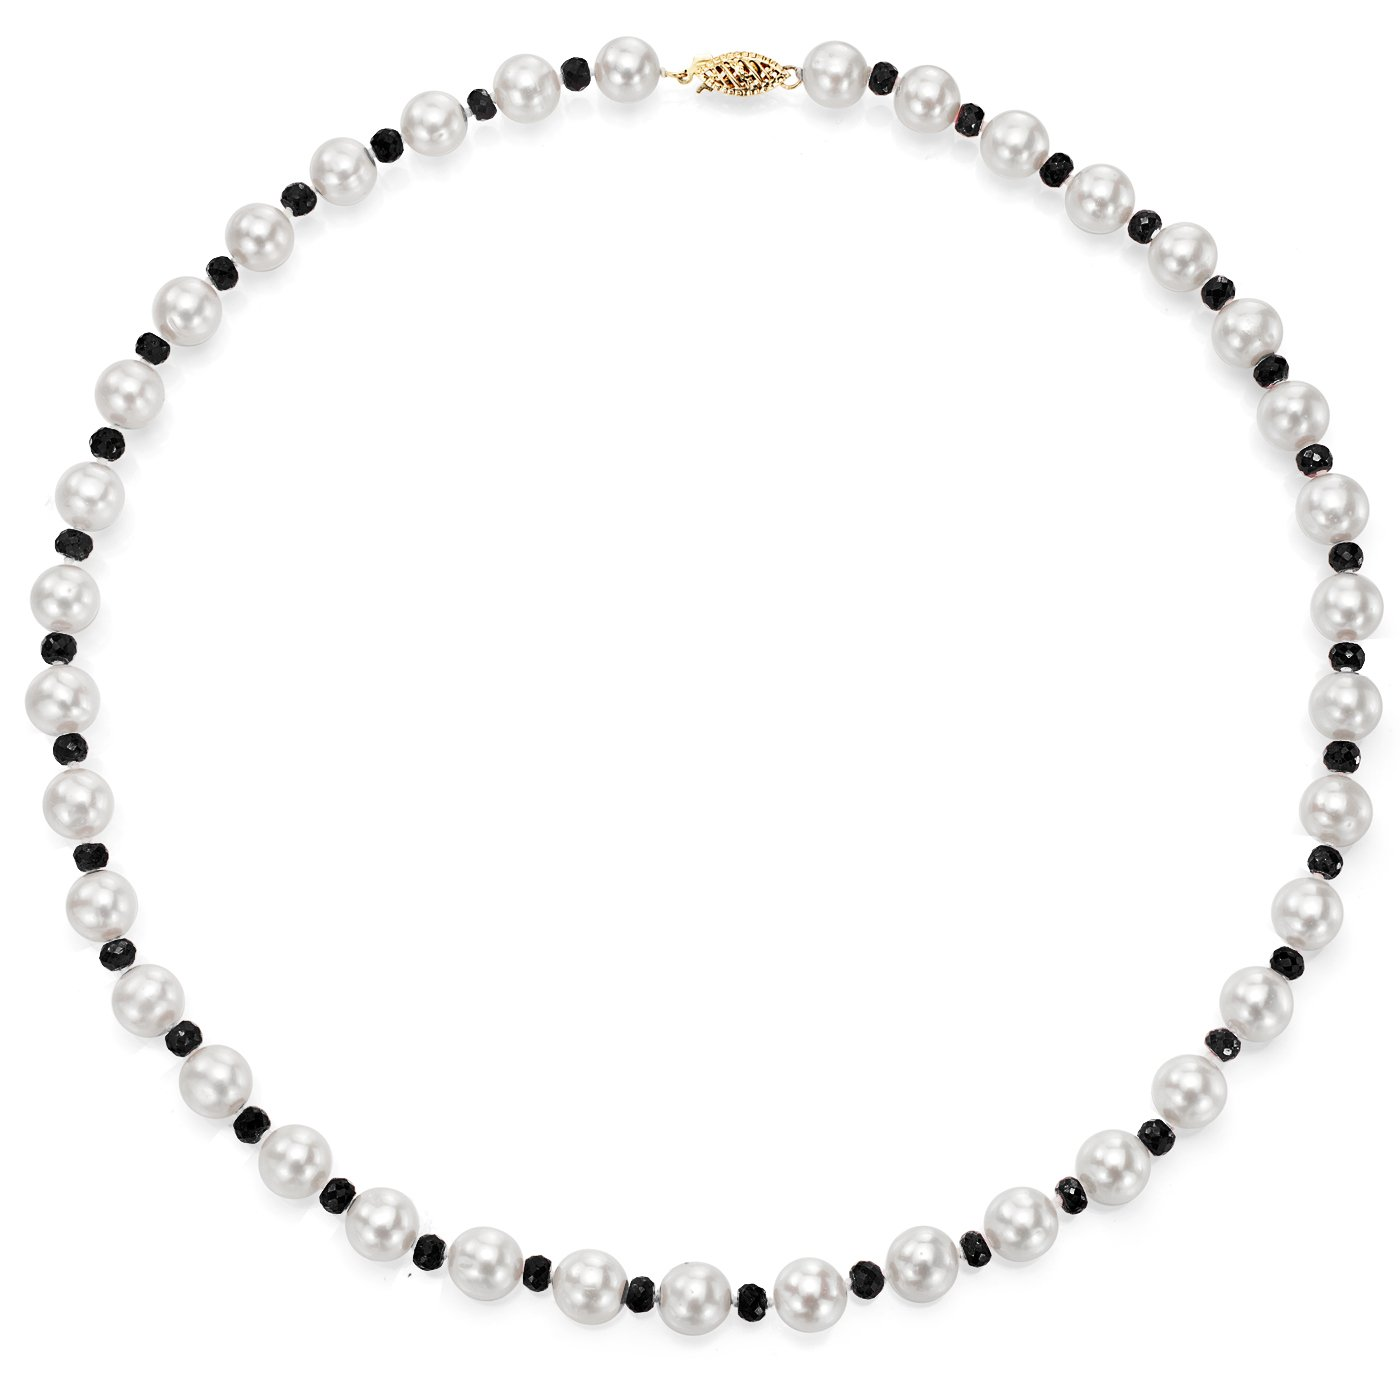 14k Yellow Gold 8-8.5mm White Freshwater Cultured Pearl and 4-4.5mm Simulated Onyx Necklace, 18'' by La Regis Jewelry